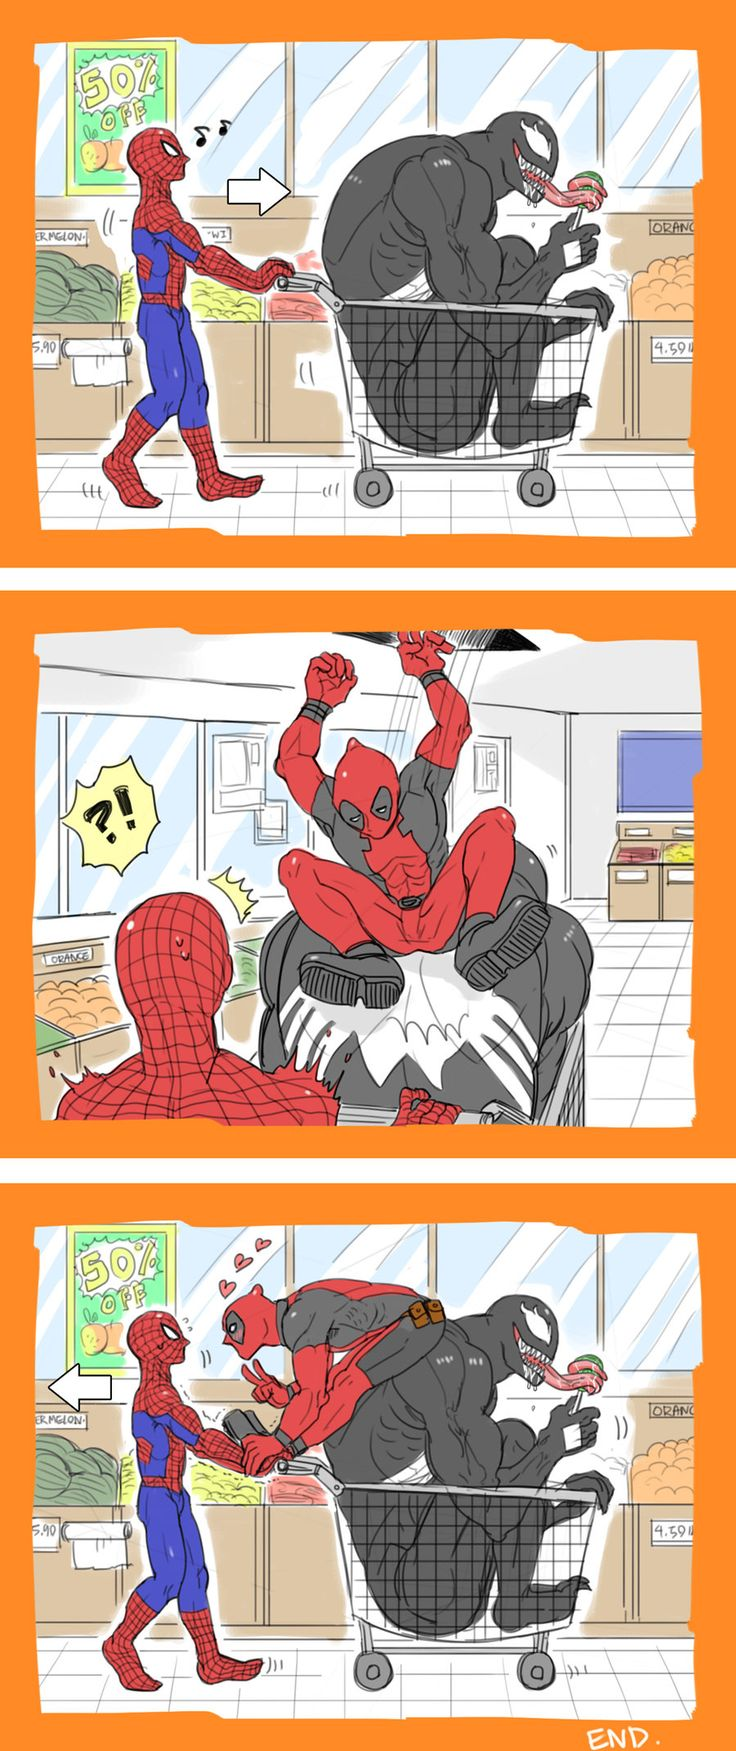 +SHOPPING WITH SPIDERMAN+ by C2ndy2c1d.deviantart.com on @deviantART